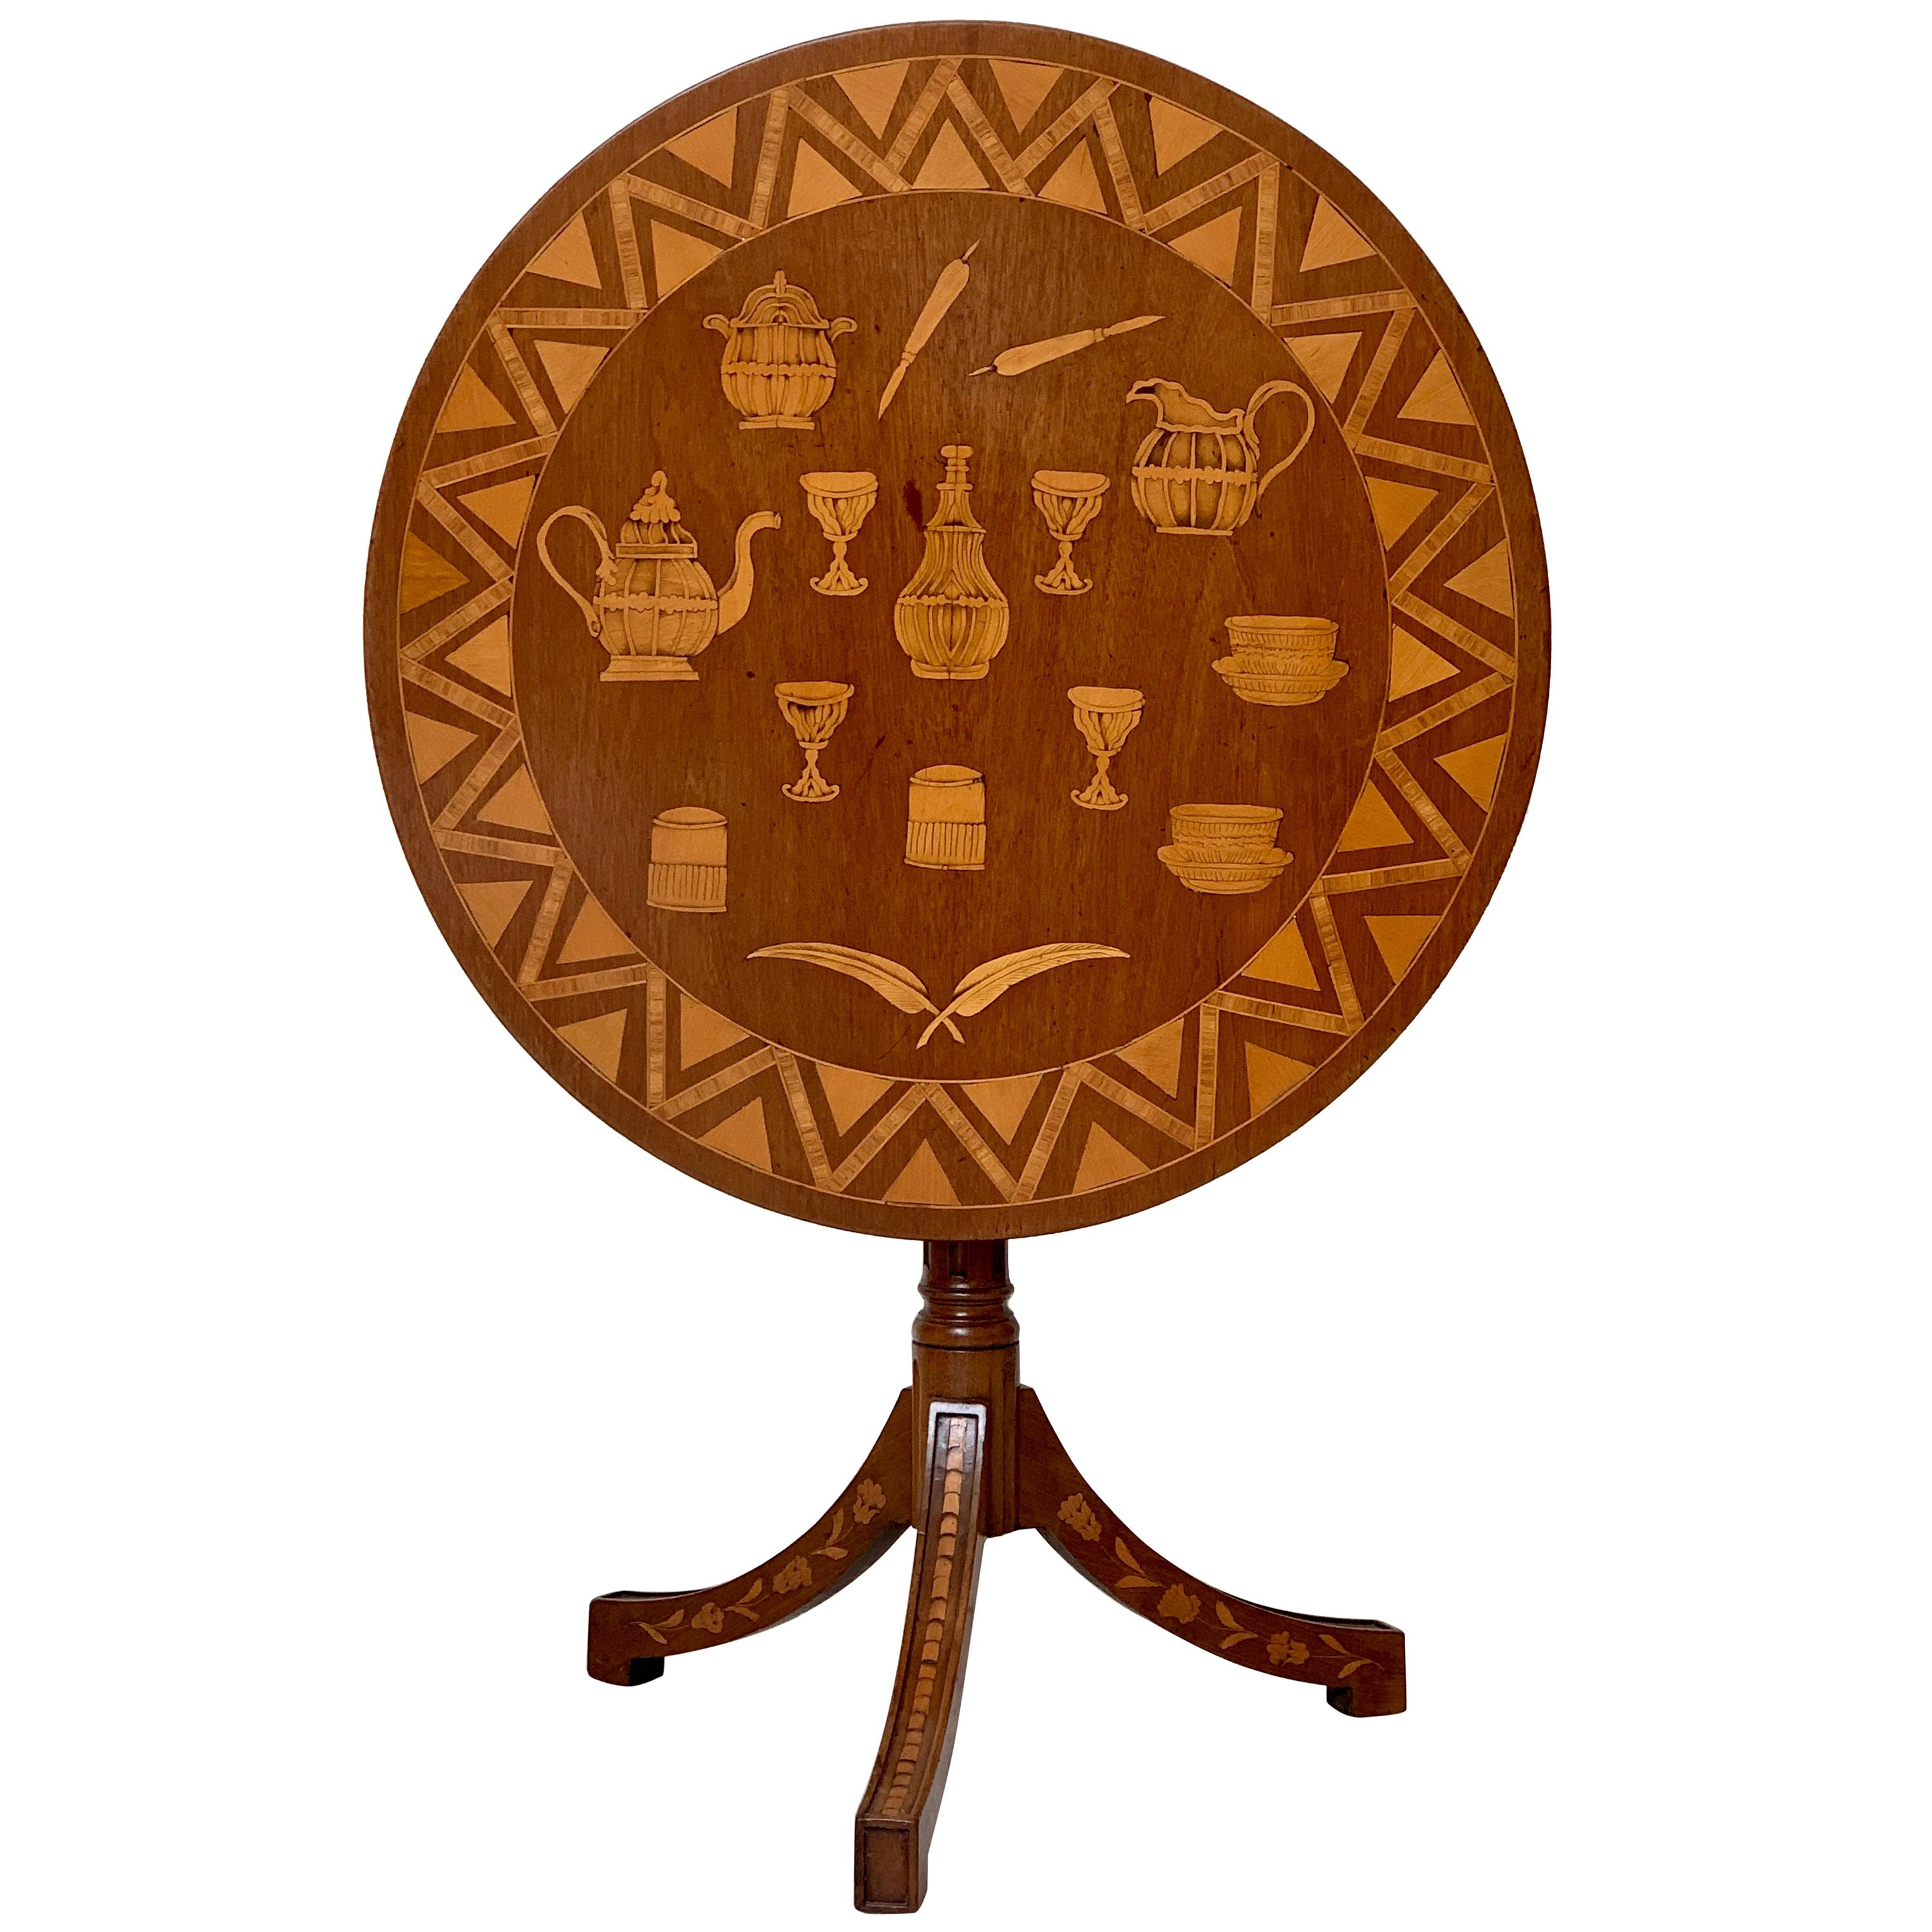 Unusual Early 19th Century Marquetry Tilt-Top or Tripod Table Provincial